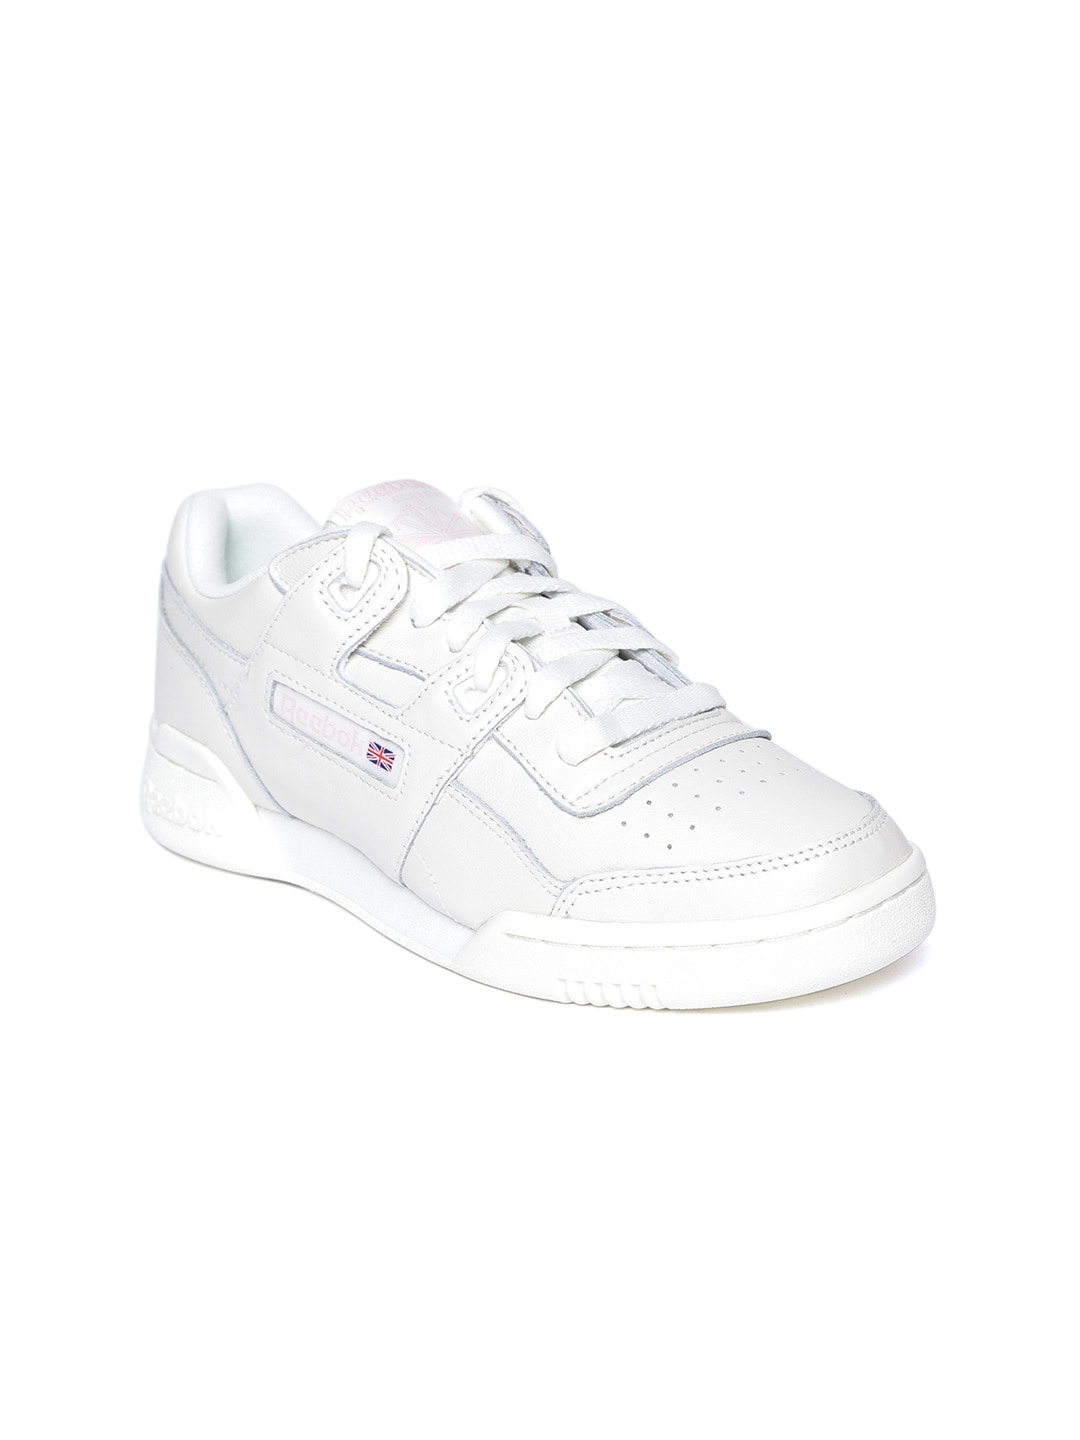 6994e4ccee9 Reebok Shoes - Buy Reebok Shoes For Men   Women Online